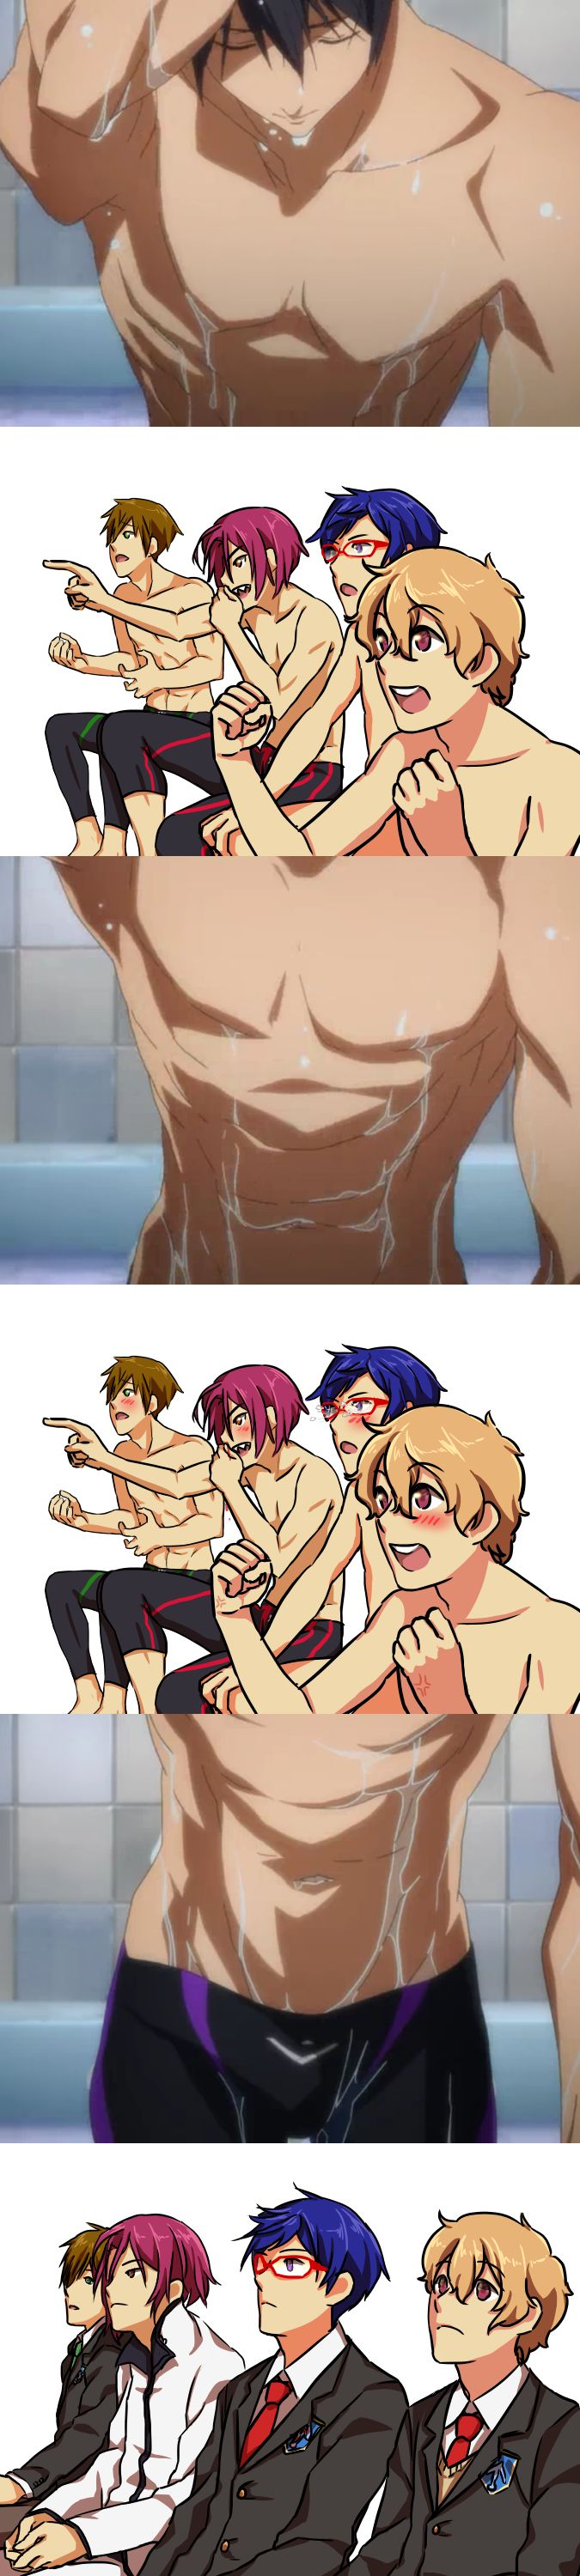 Free! ~~~ OMG, did you see Rei's glasses shattering?! ROFLMAO!!